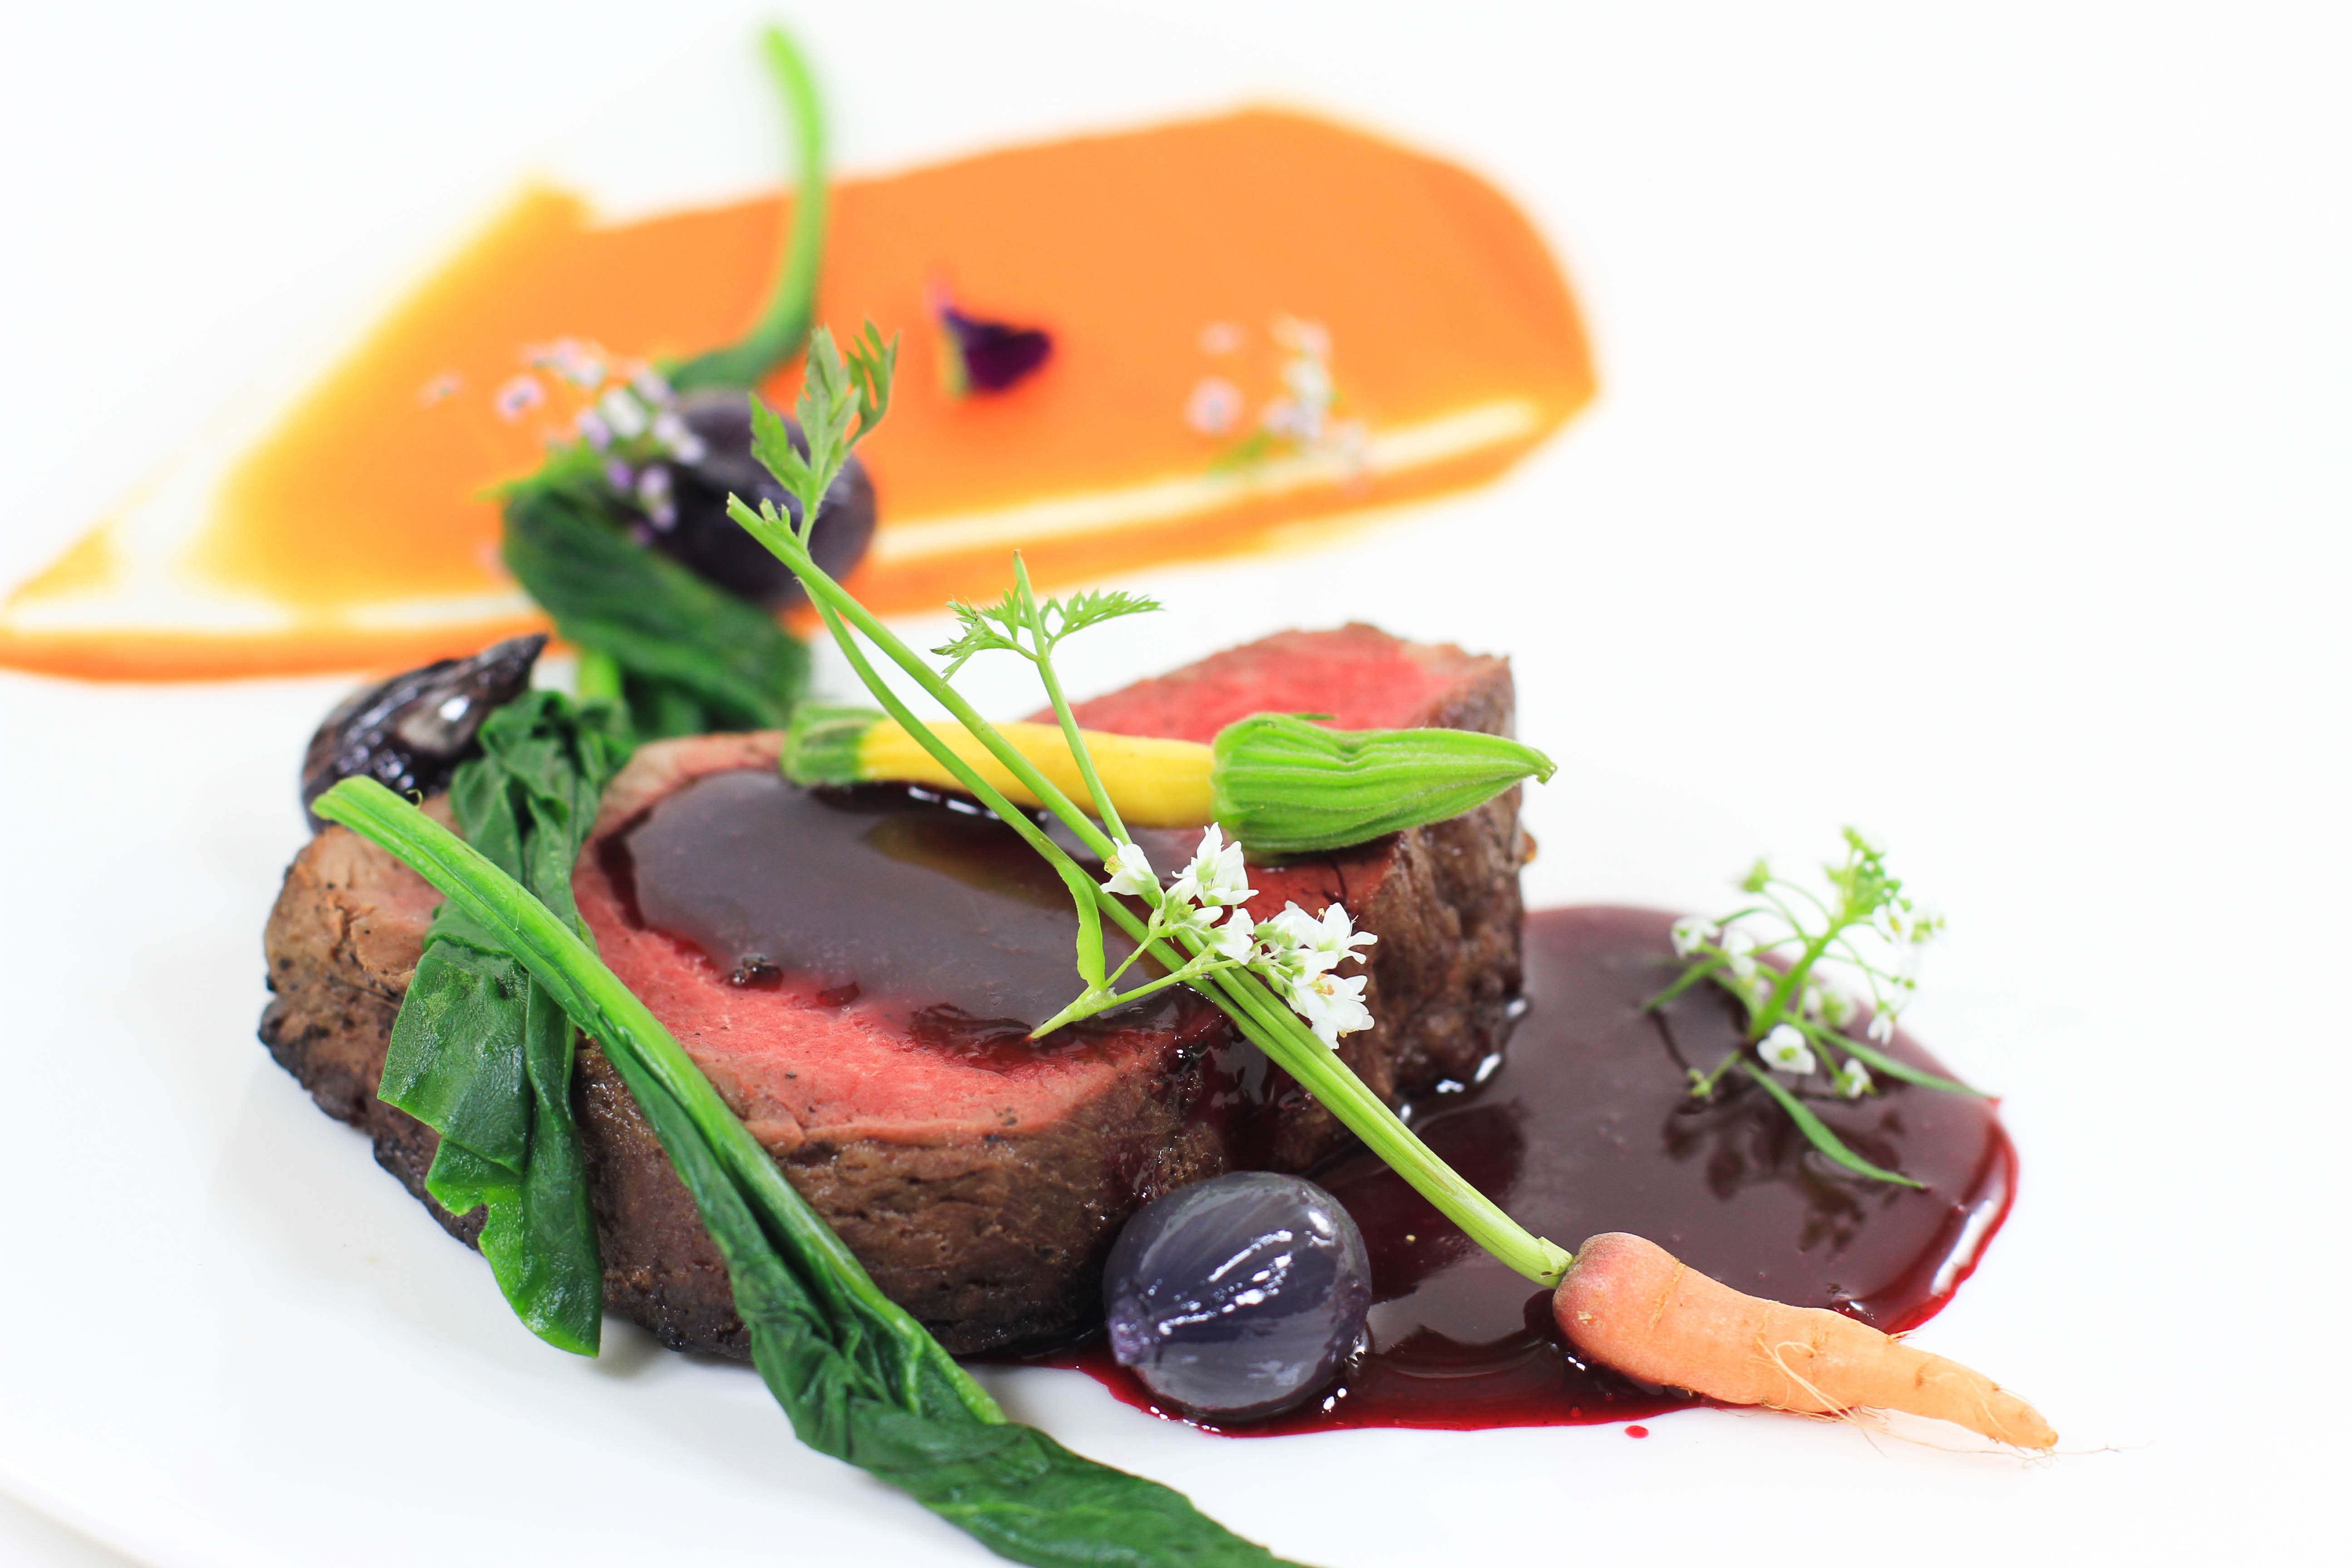 Hult's Restaurant farm to fork dining experience offers five course meals